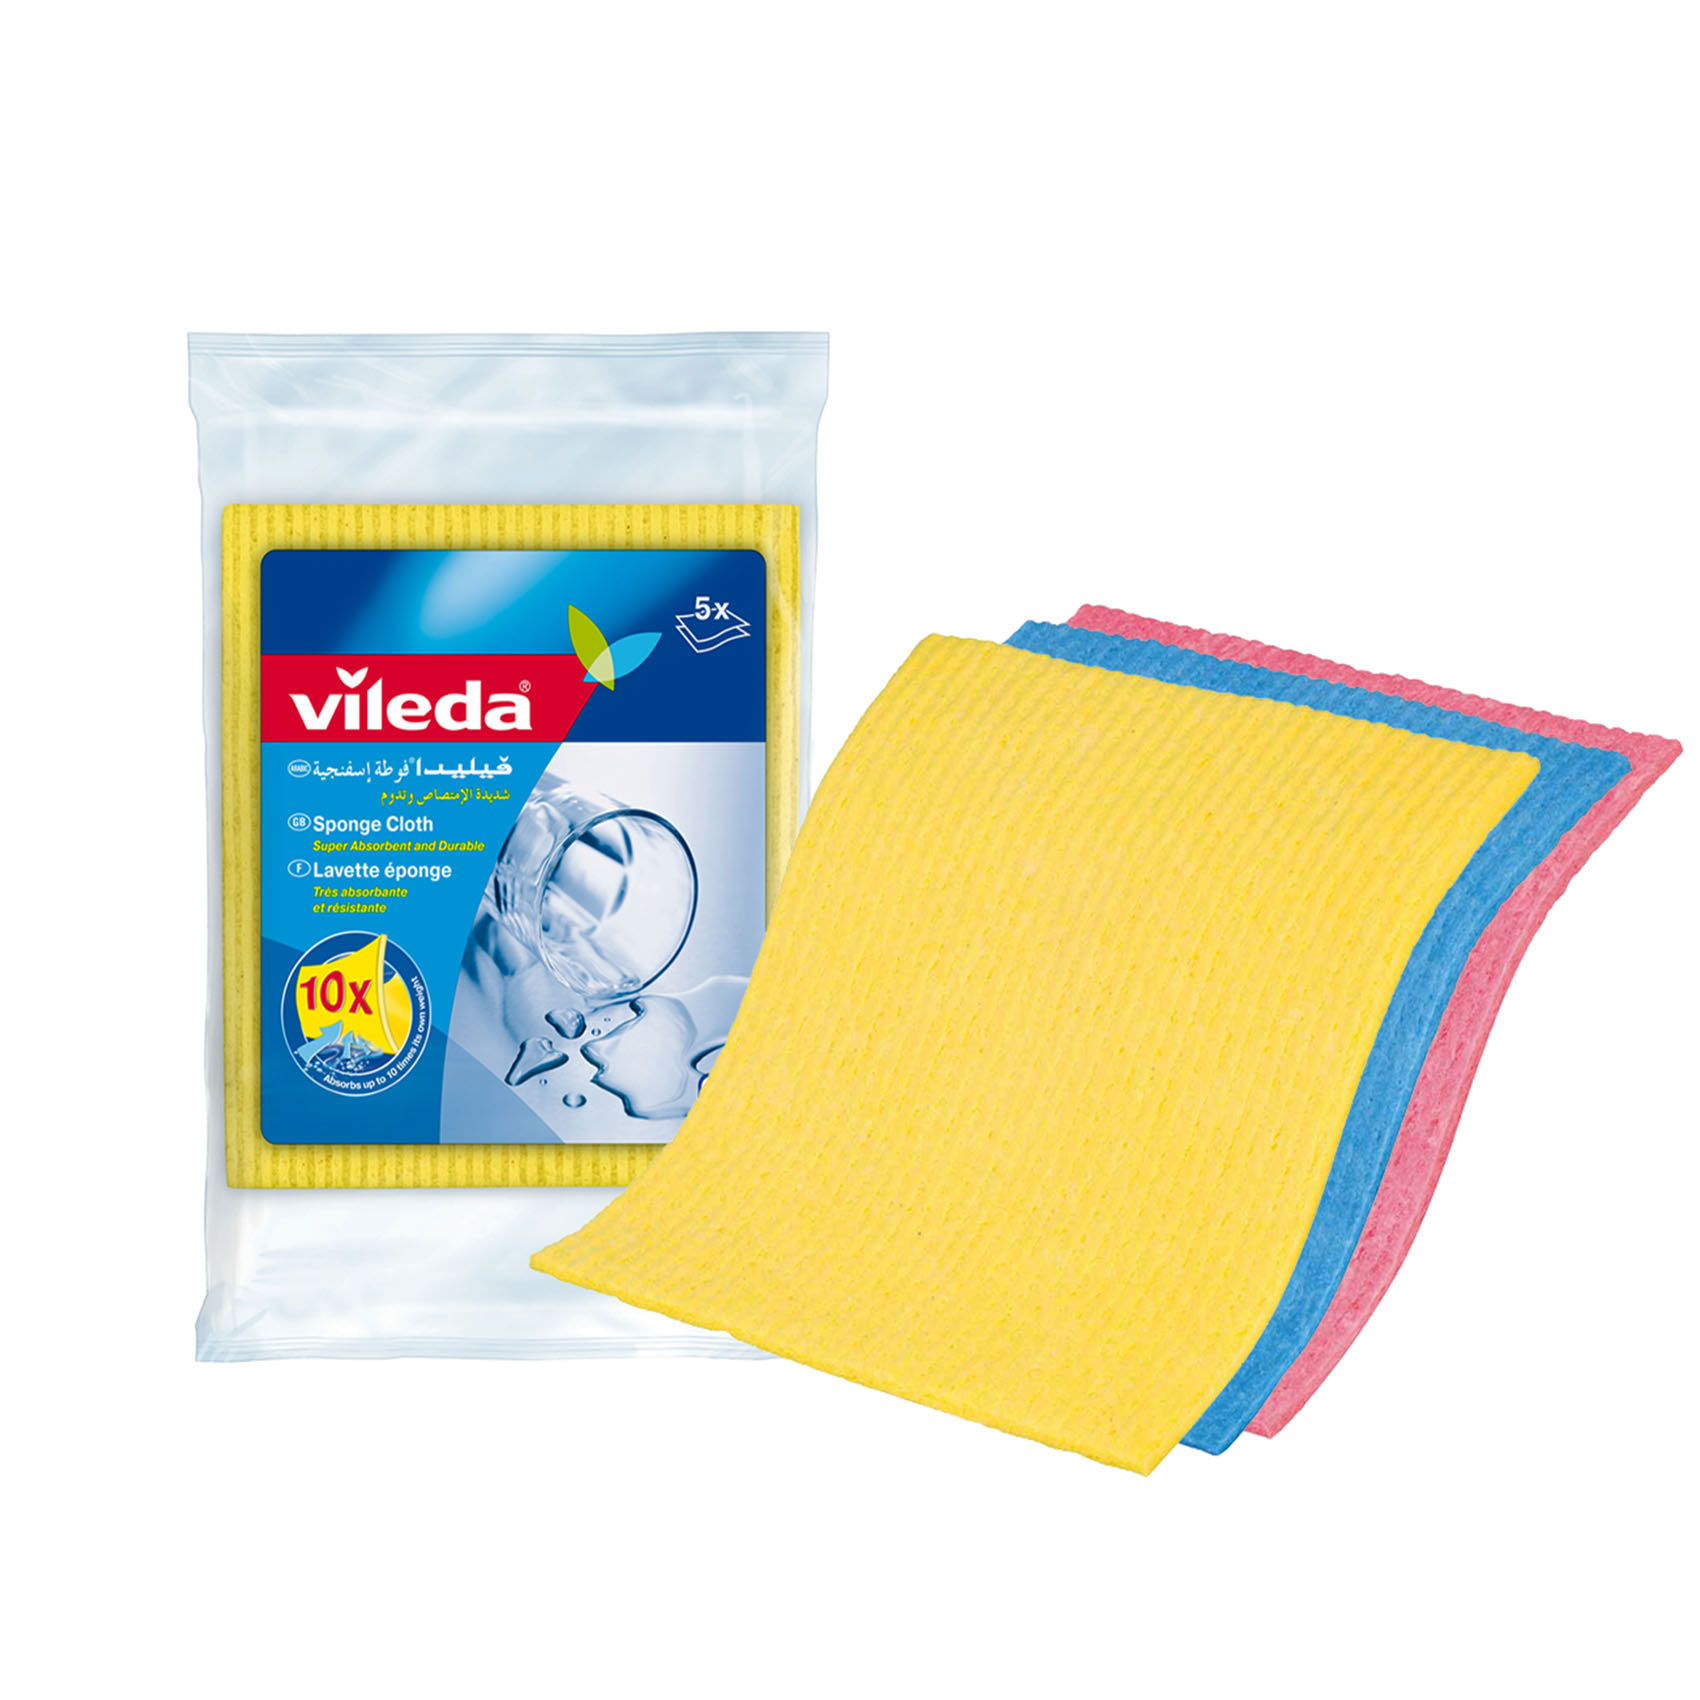 VILEDA SPONGE CLOTH 5PC